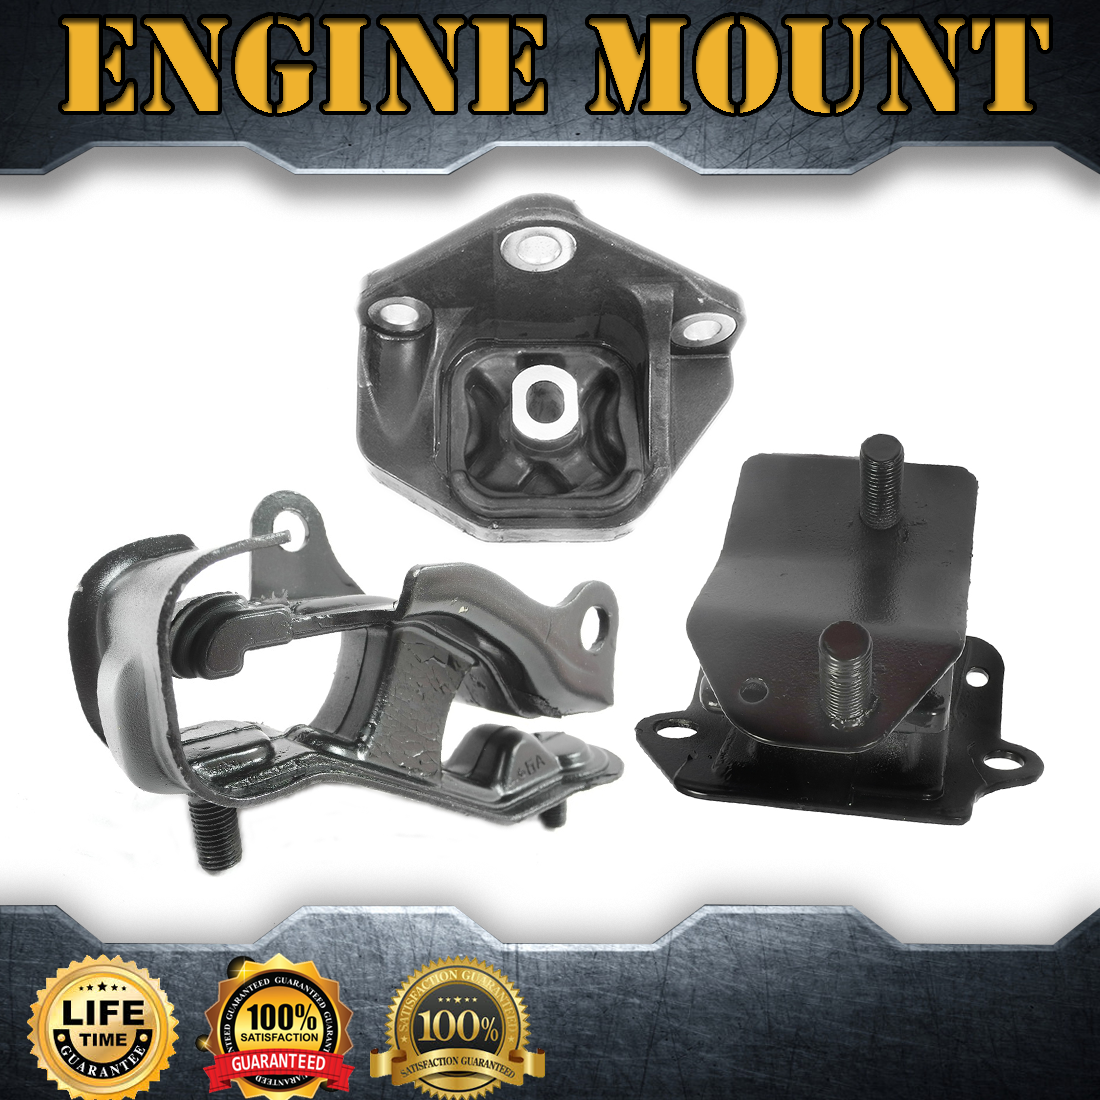 3X Engine Motor& Auto Trans Mount Set Kit For 2004-2006